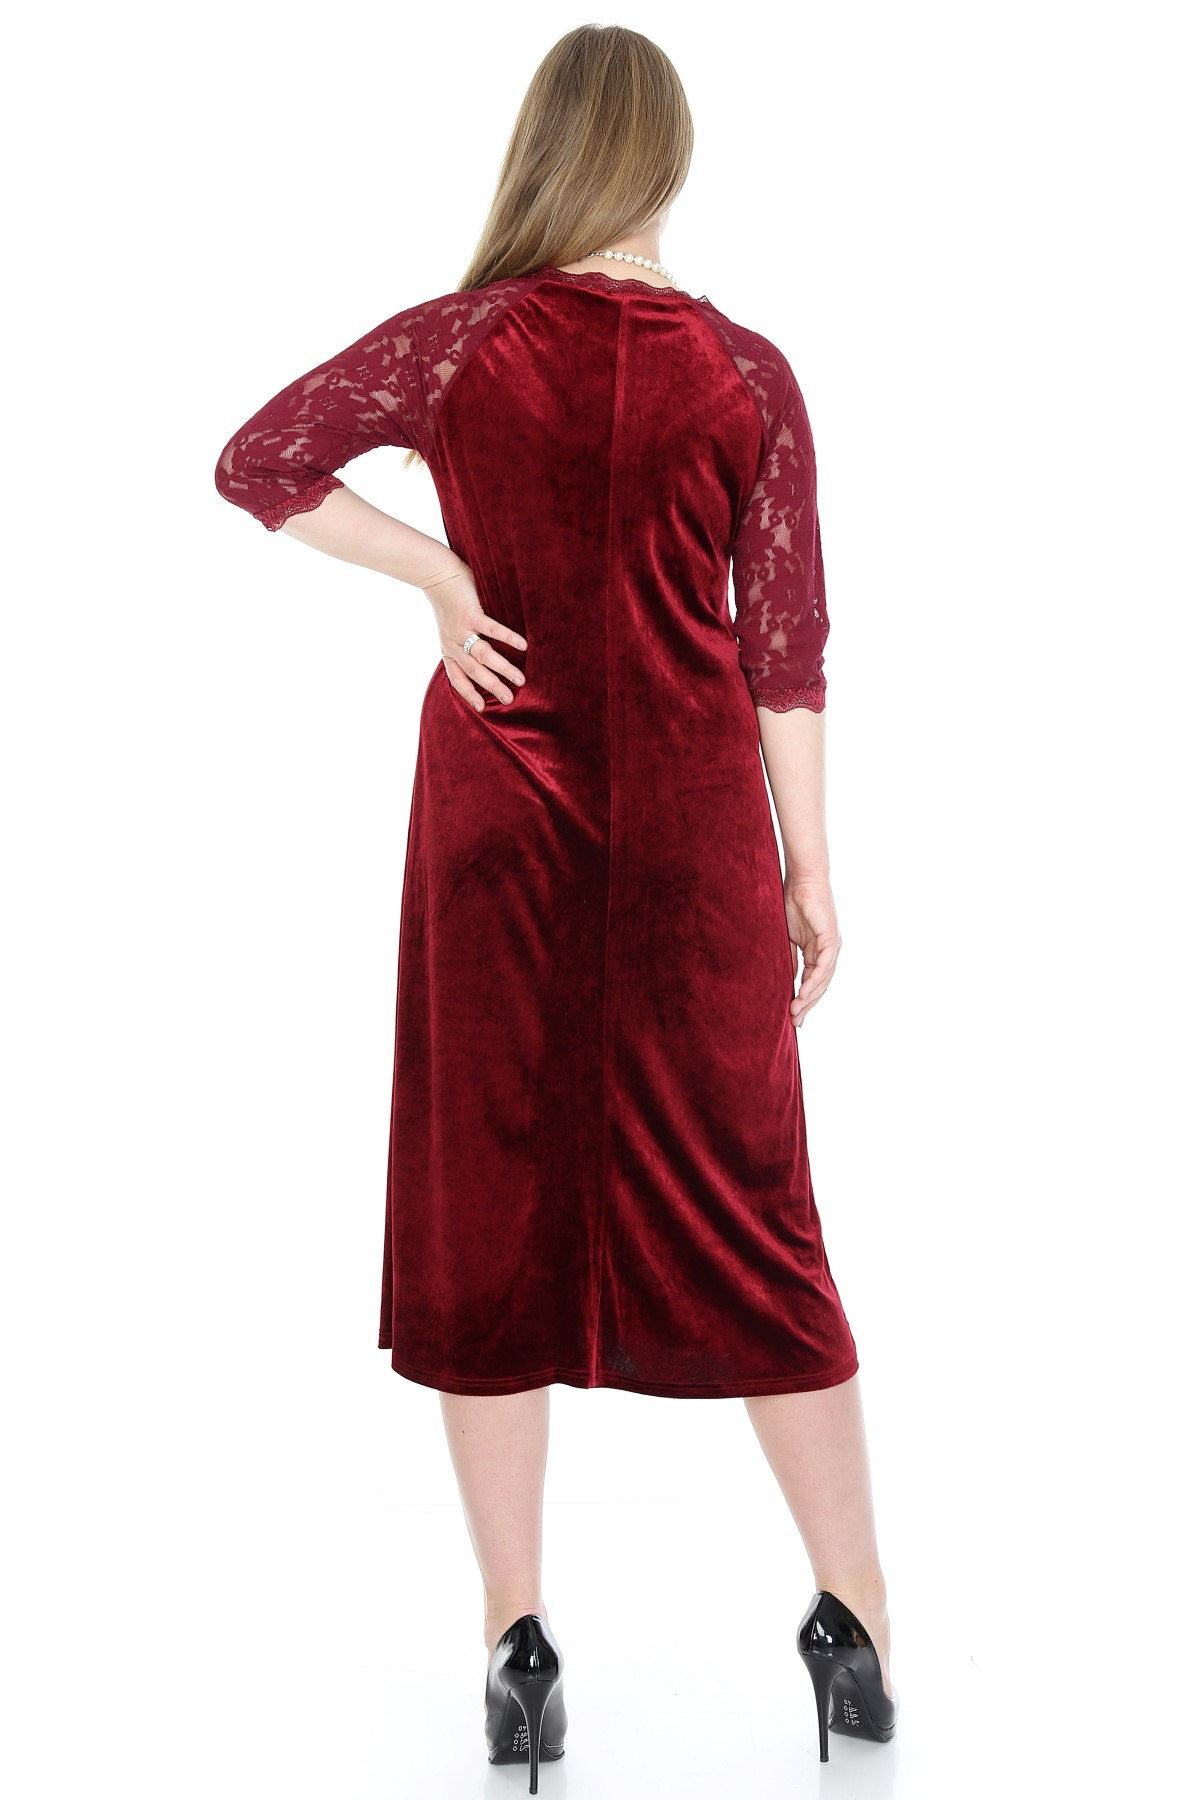 Women's Oversize Velvet Evening Dress